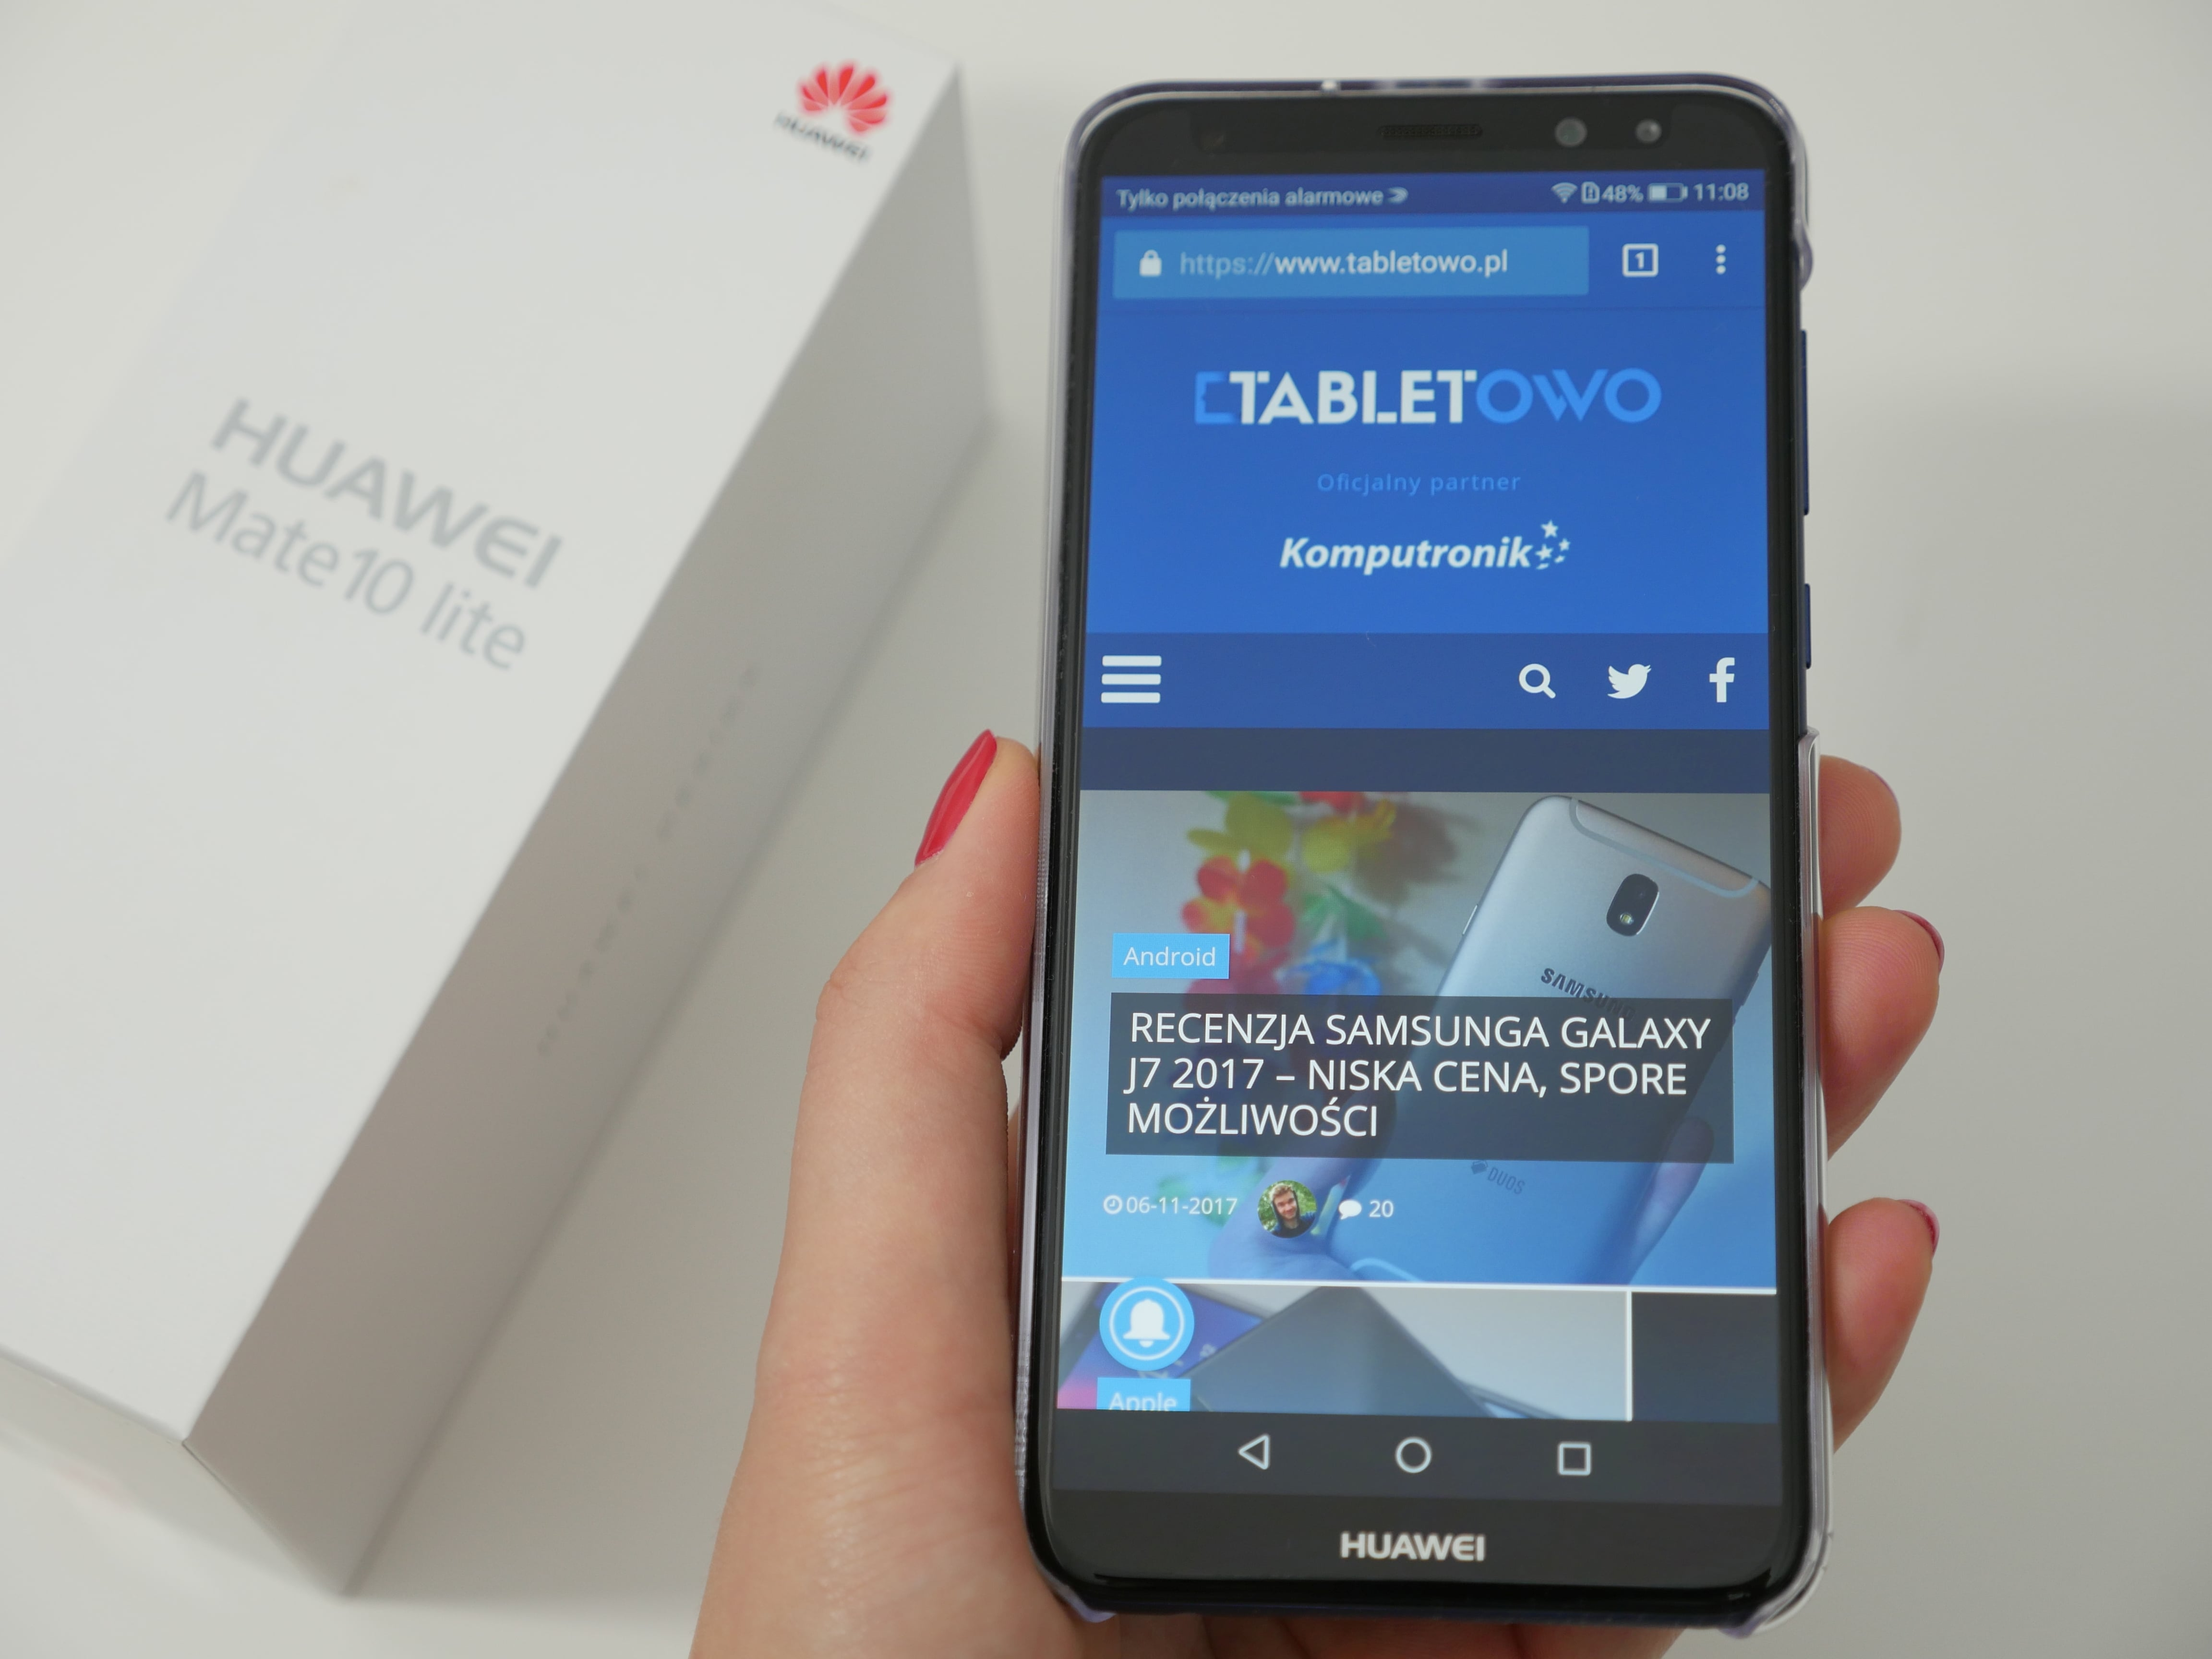 Tabletowo.pl Testujemy Huawei Mate 10 Lite Android Huawei Smartfony